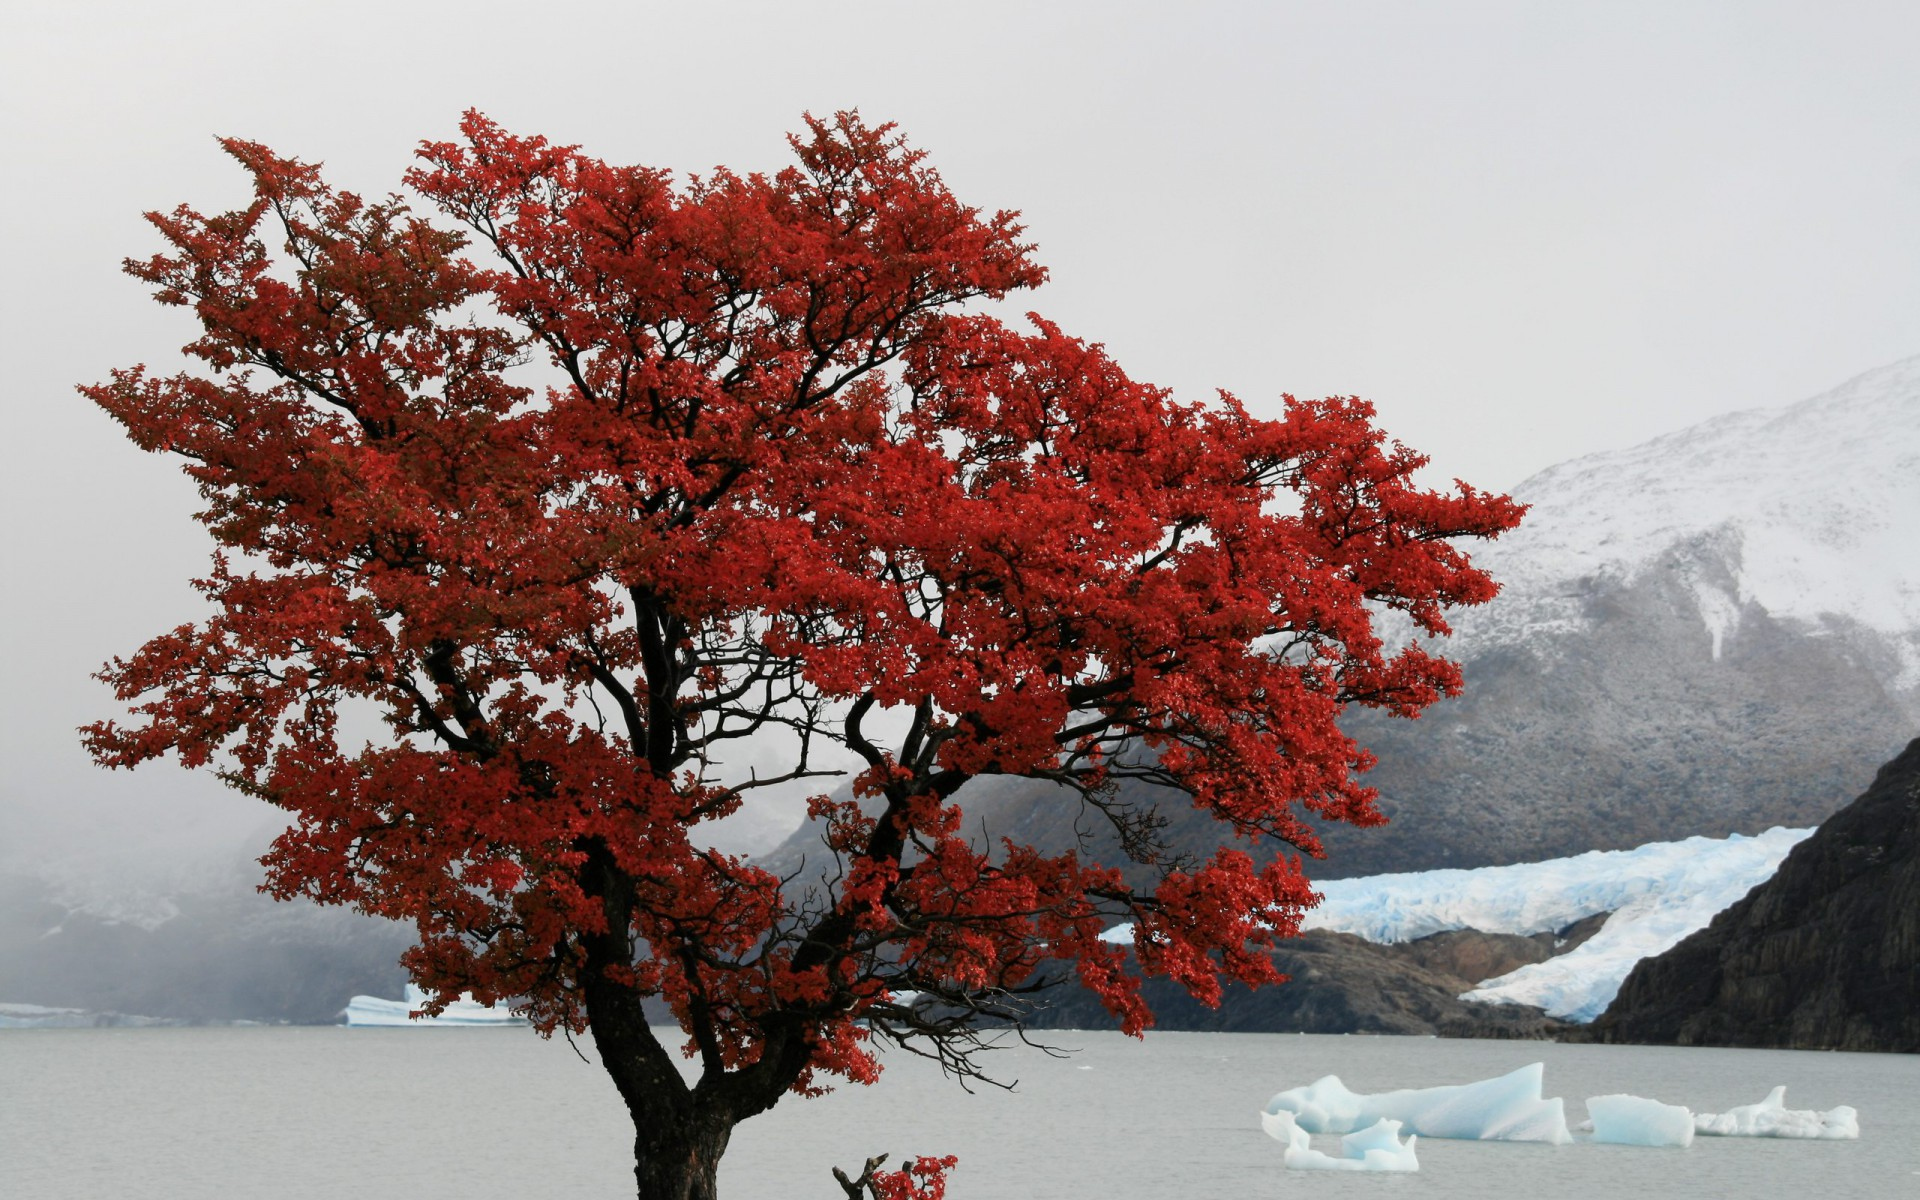 Animated Wallpaper For Tablet Red Tree Santa Cruz Province Wallpapers Red Tree Santa